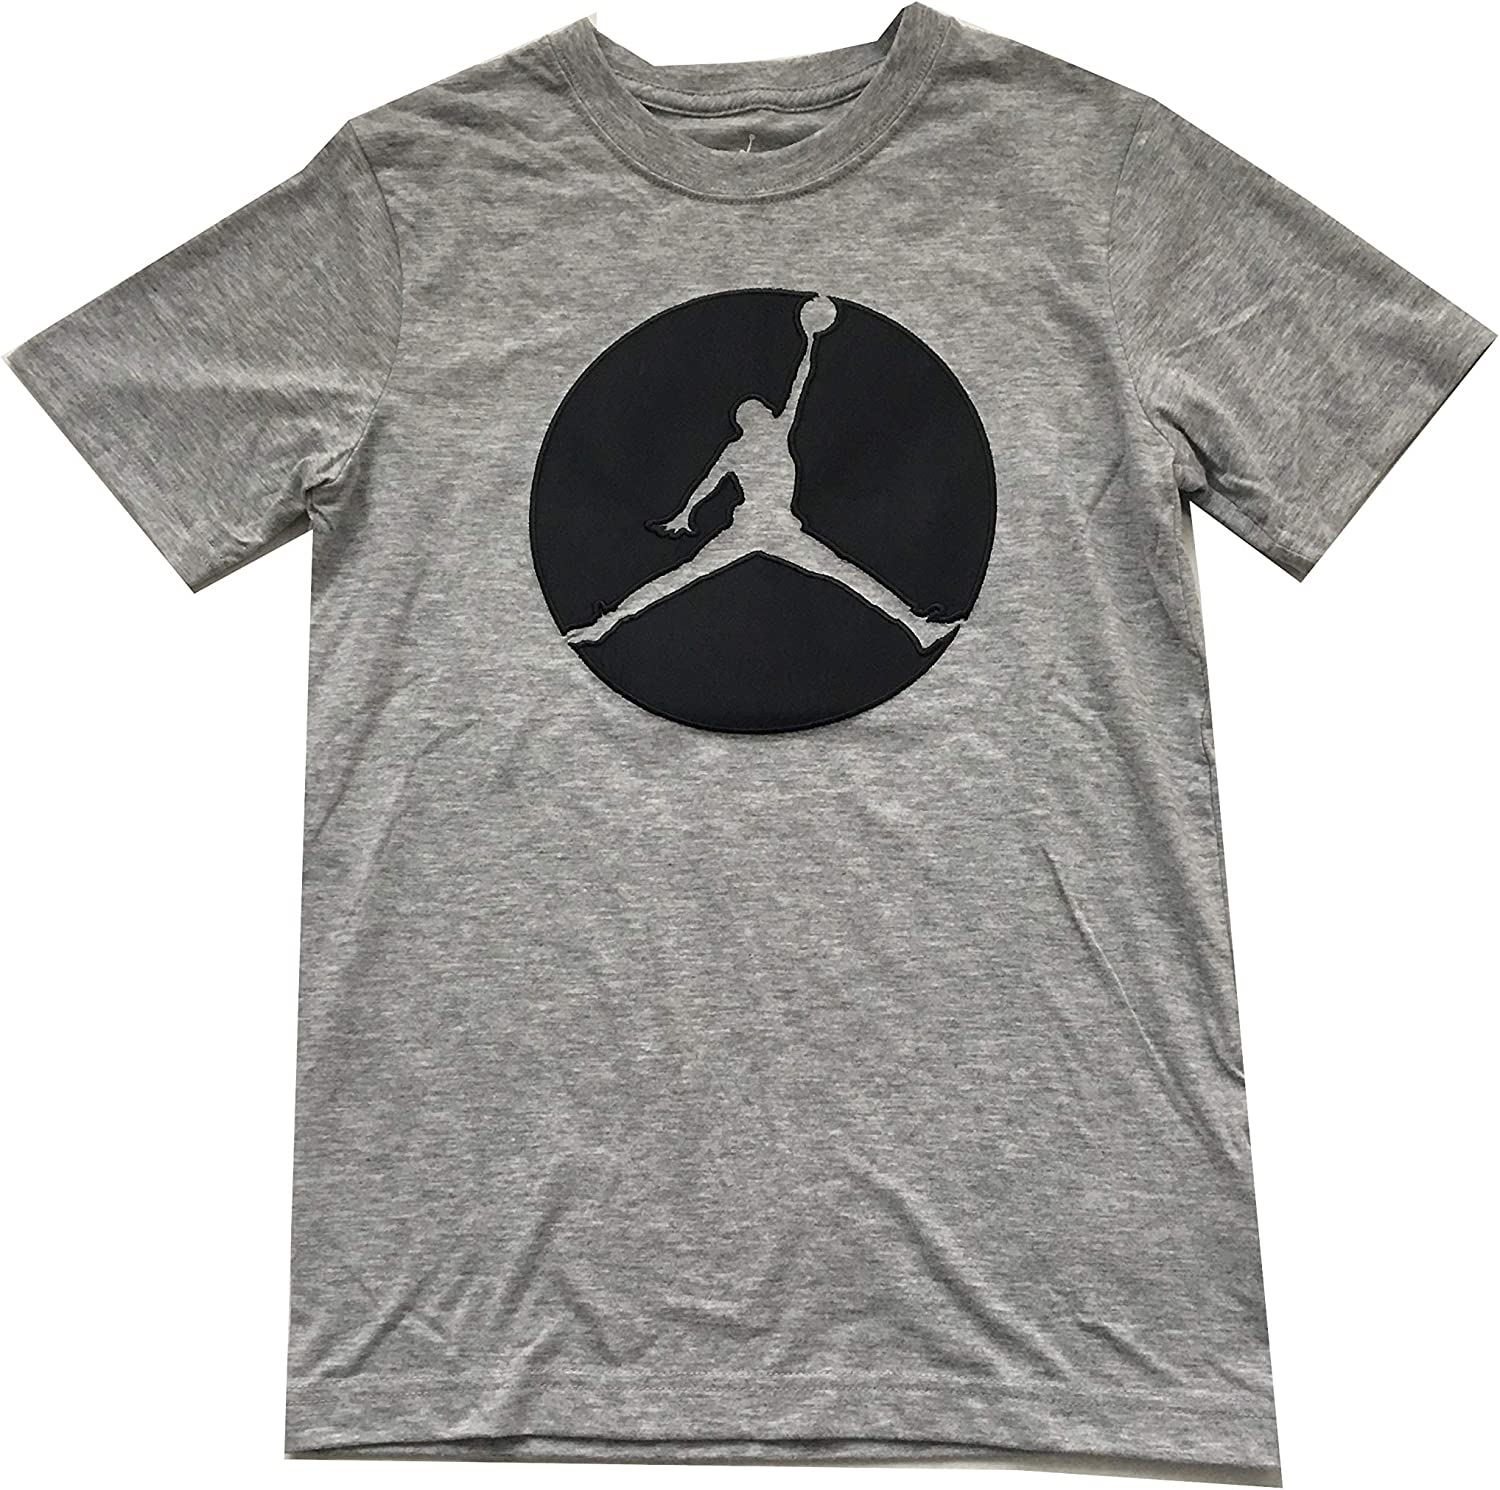 Jordan Jumpman Boys Active T-Shirt